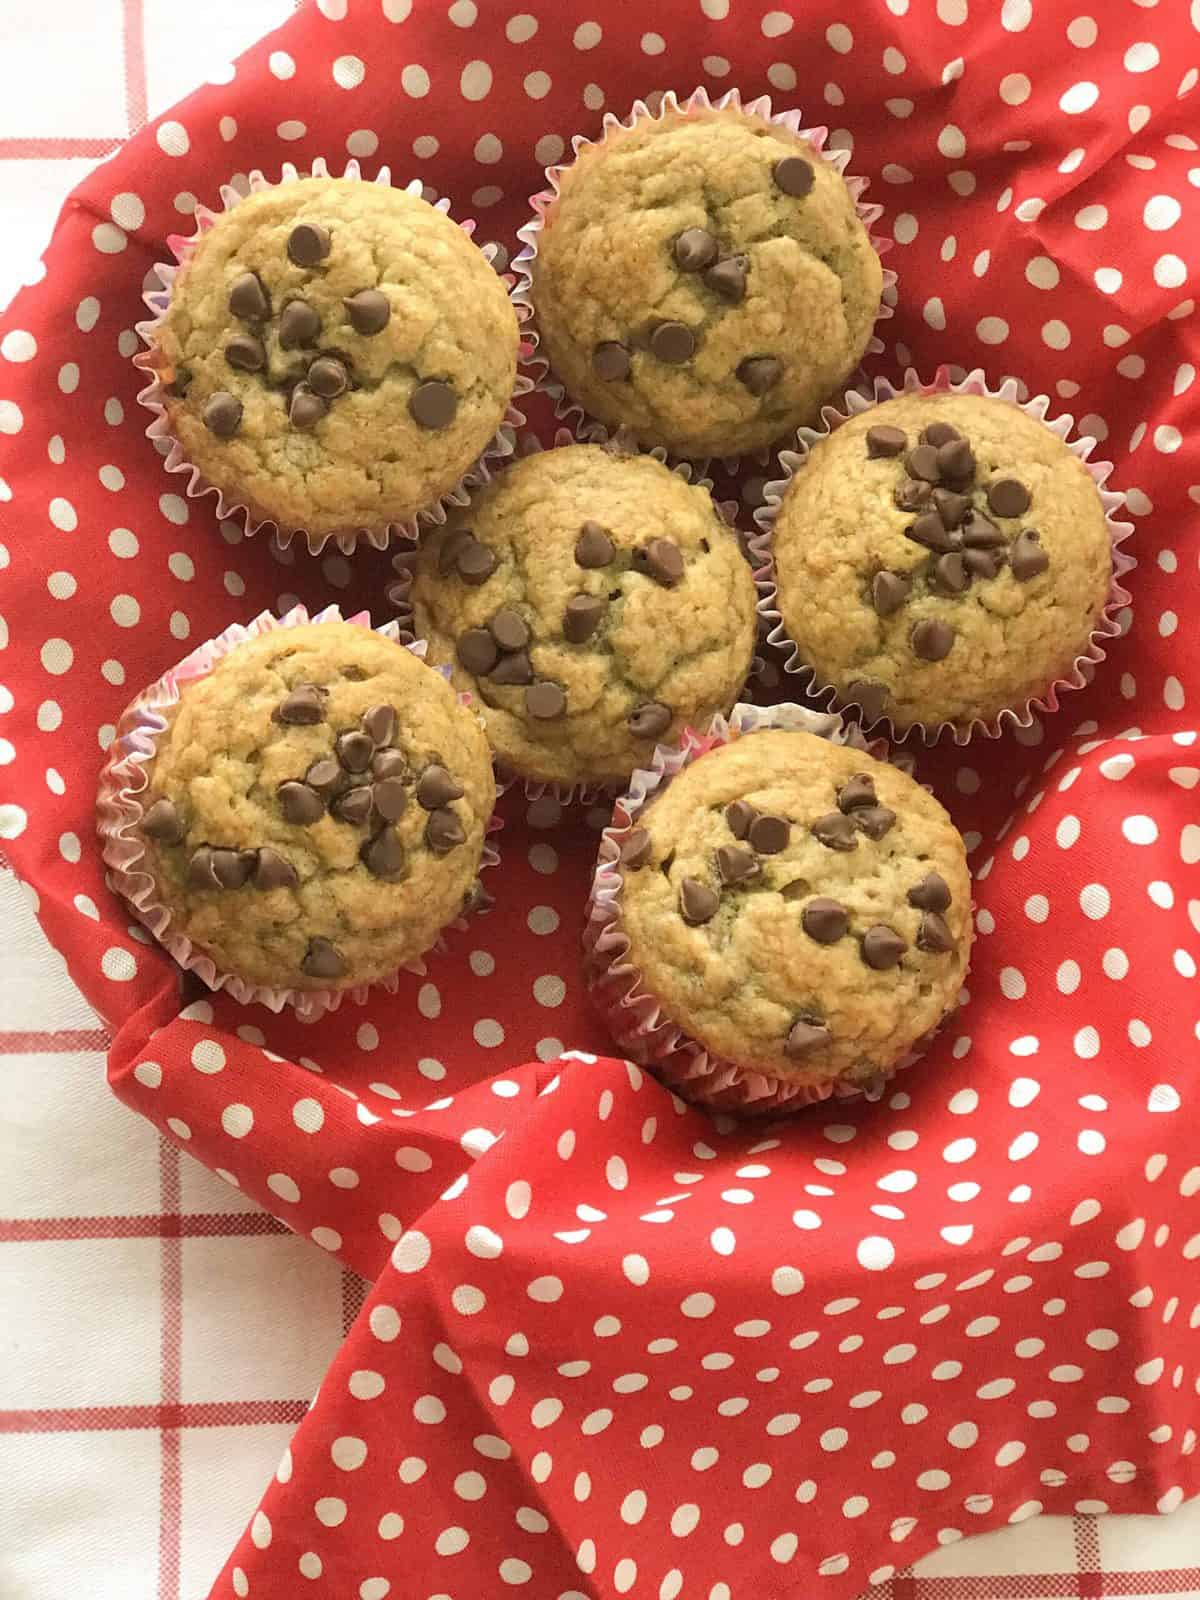 A close up of many different types of muffins